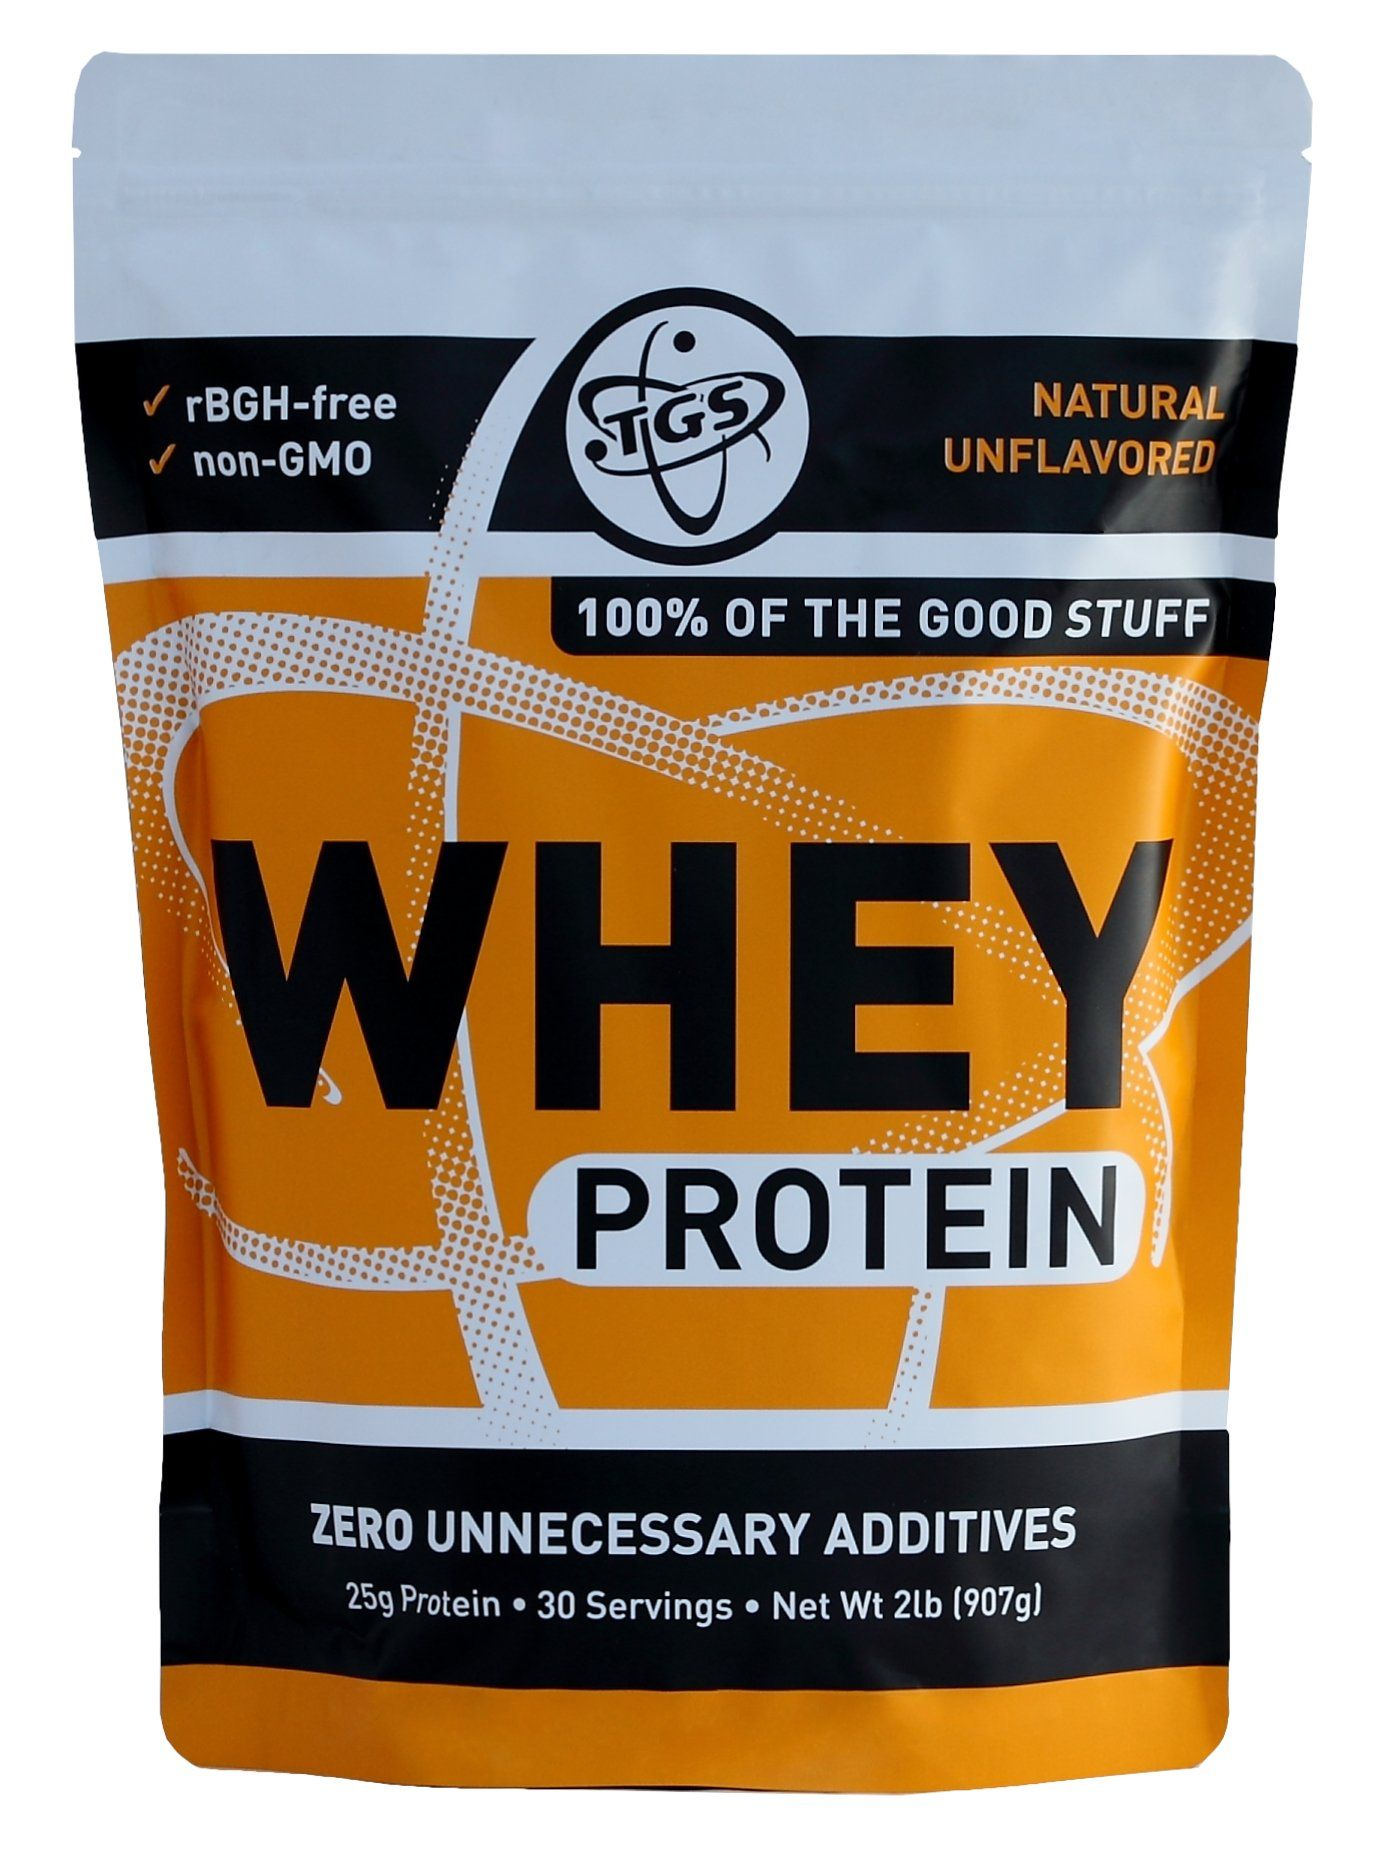 TGS Nutrition 100 Whey Protein, Natural Unflavored, 2